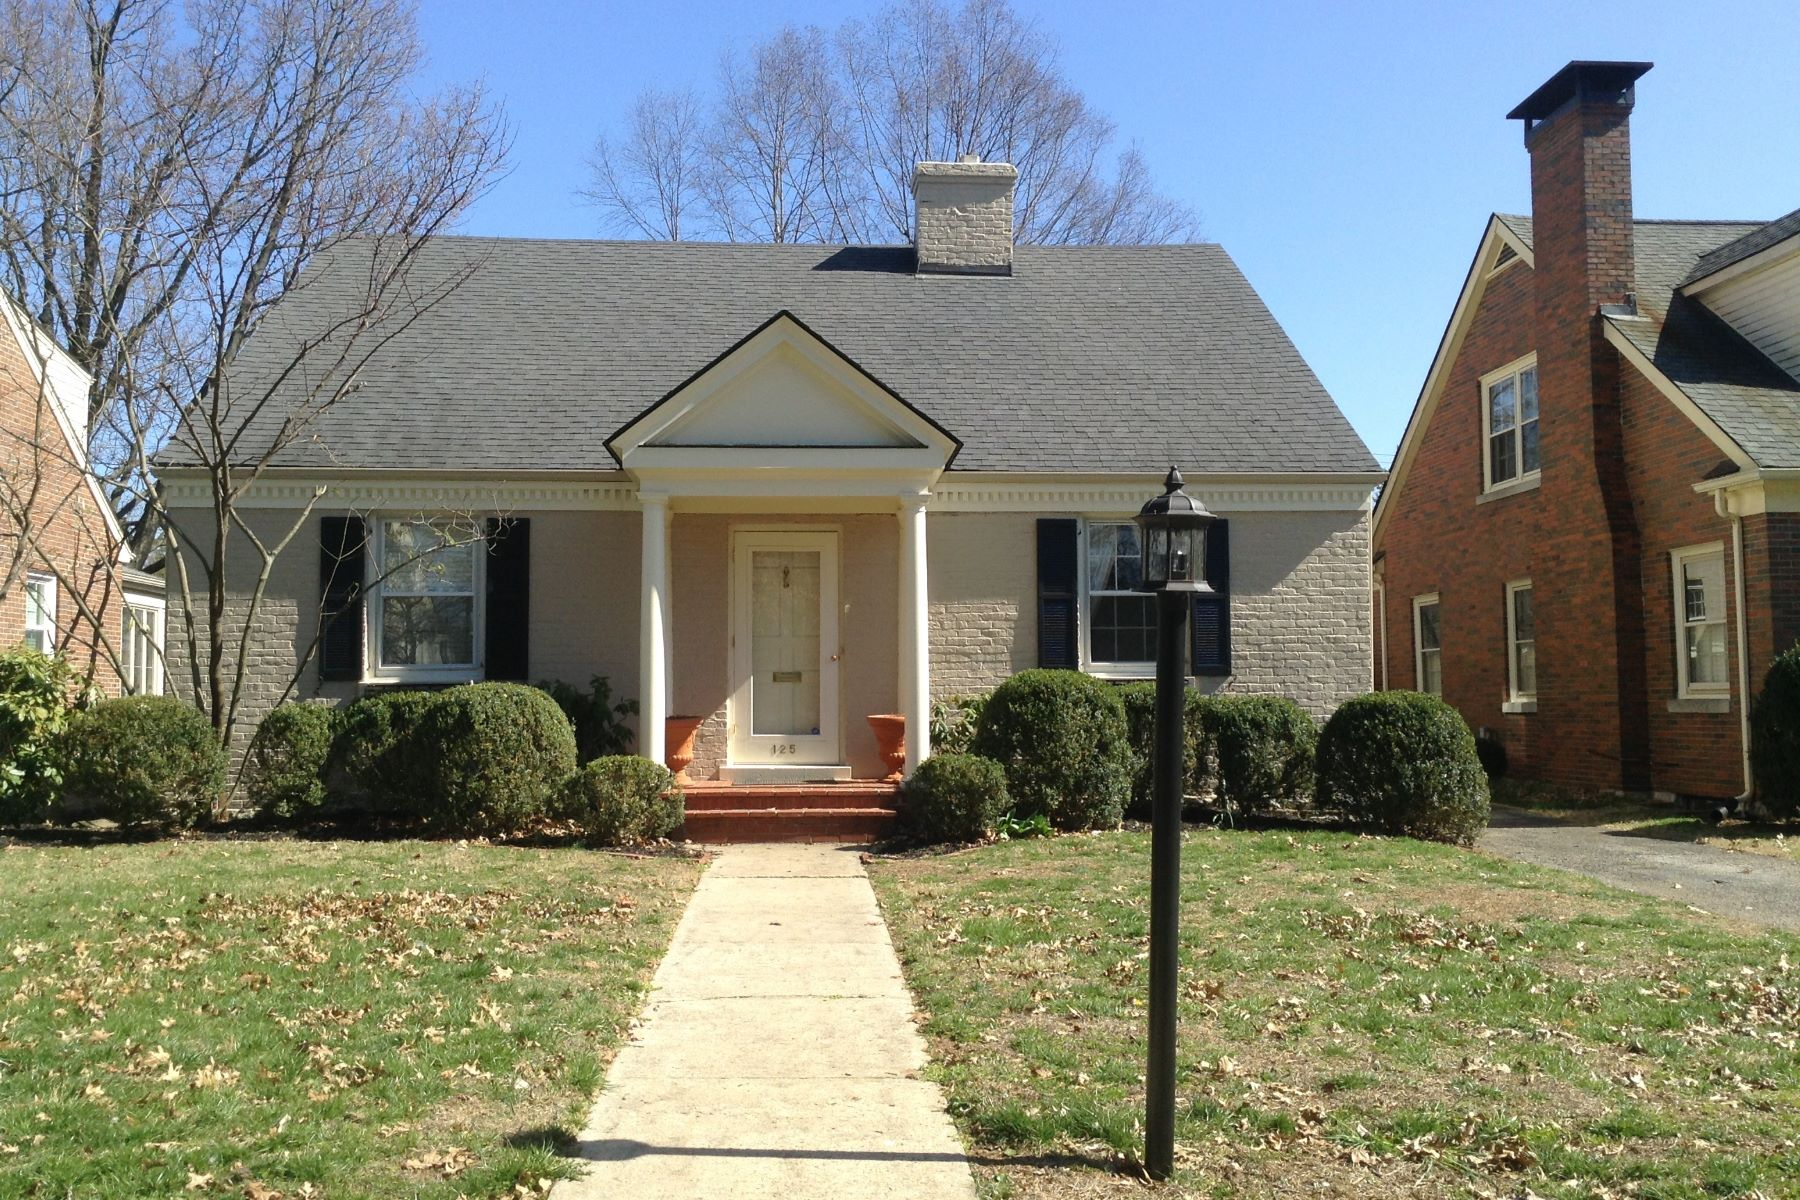 Single Family Home for Sale at 125 Romany Road Lexington, Kentucky 40502 United States